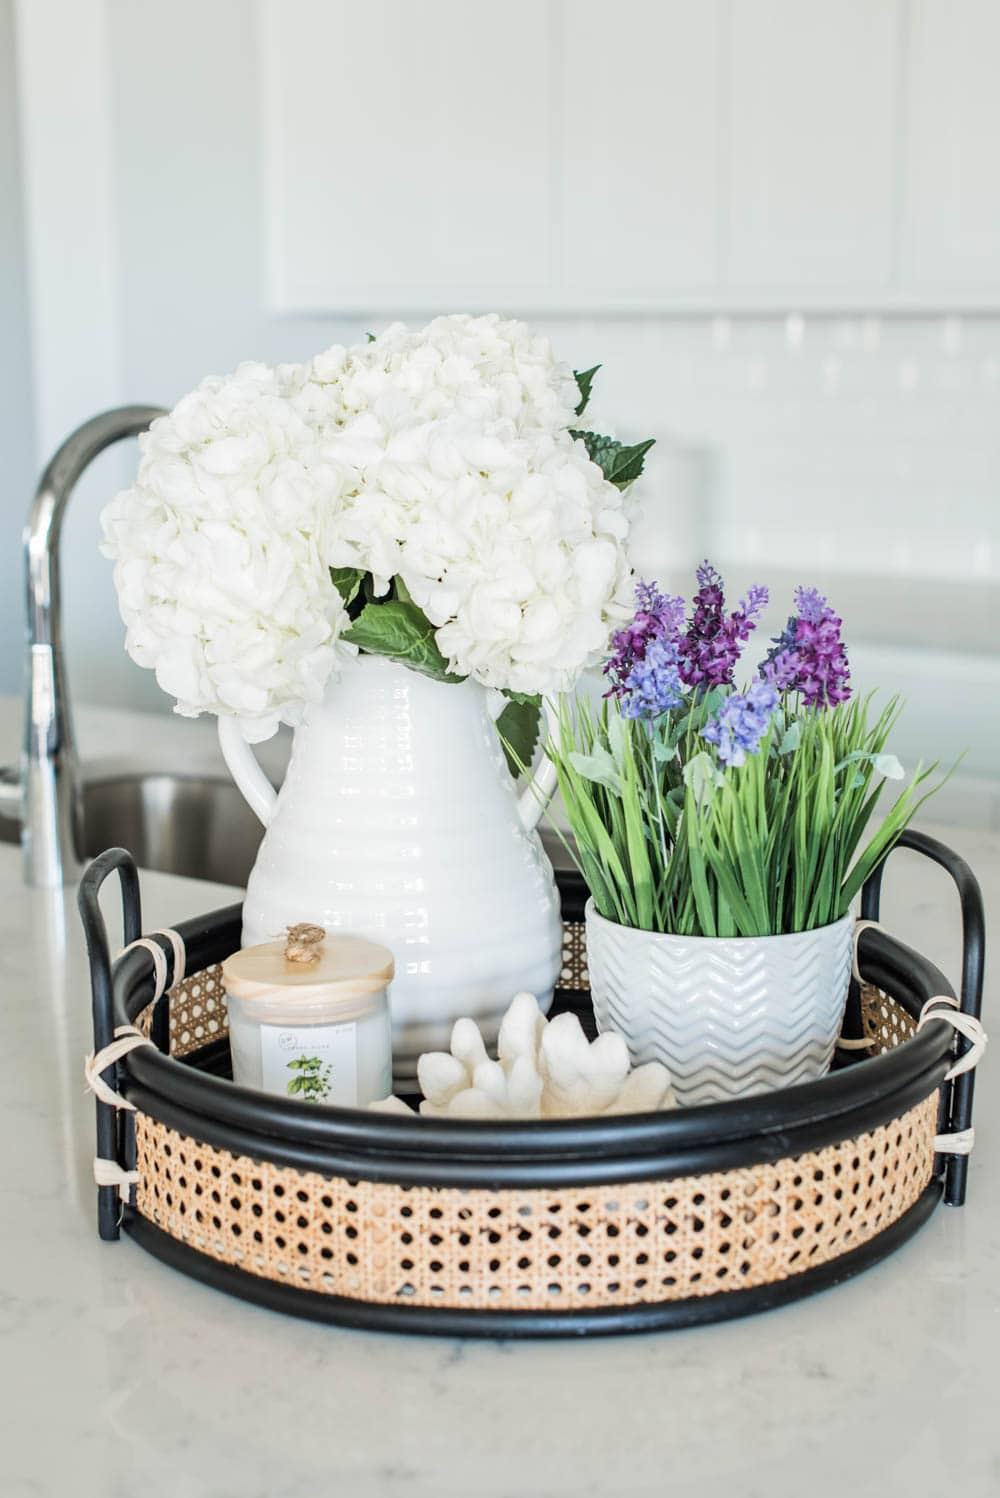 Use a mix of faux flowers and real flowers for simple and effortless spring decorating. #ABlissfulNest #springideas #springdecor